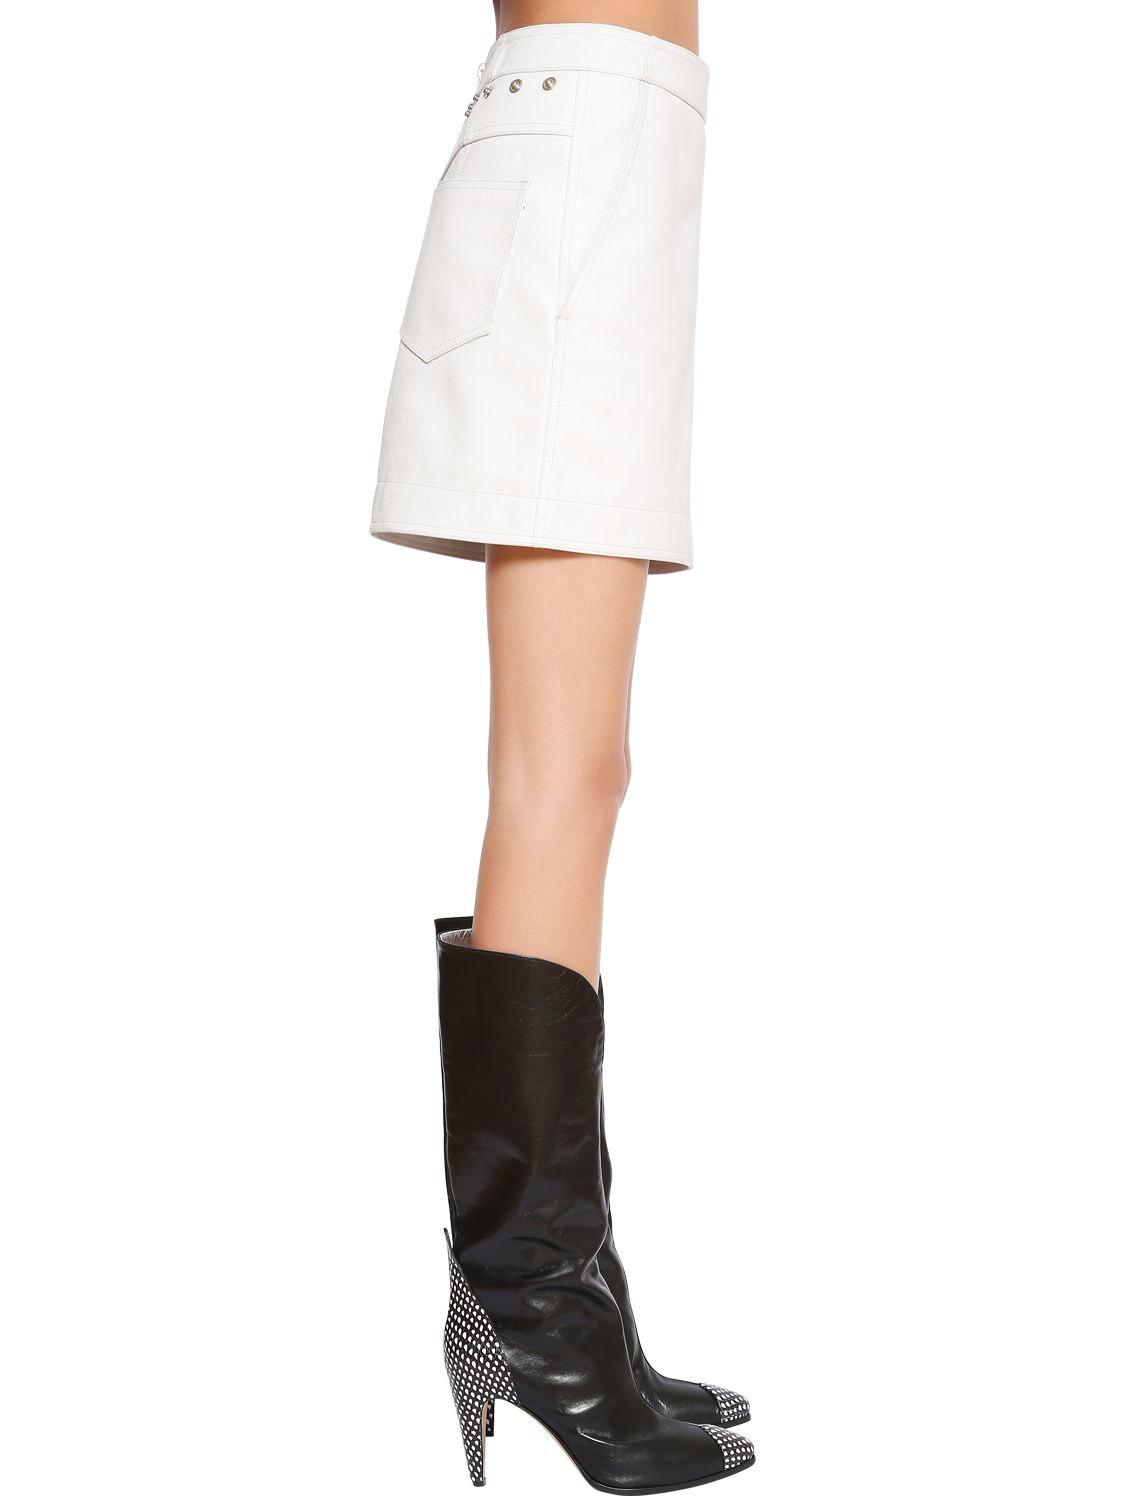 612fbc3174e Gallery. Previously sold at: LUISA VIA ROMA · Women's Leather Skirts  Women's Leather Mini ...